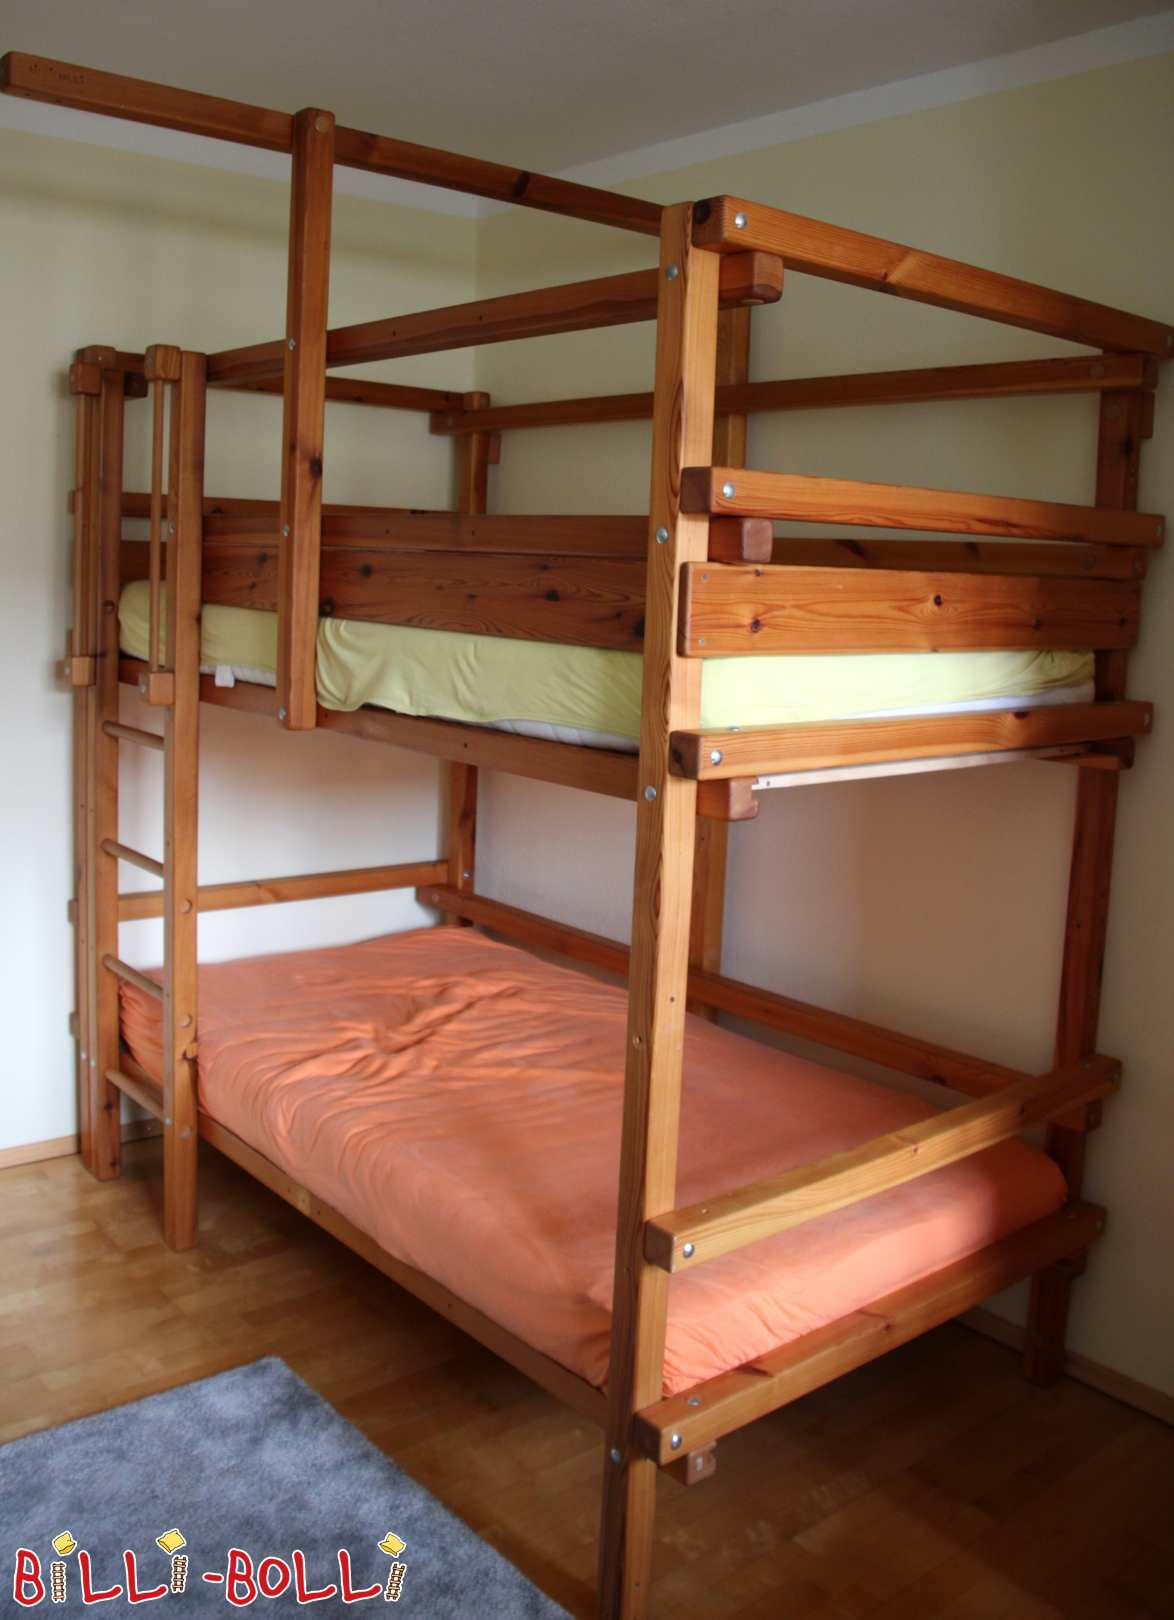 Bunk bed 100x200 cm in Osnabrück (second hand bunk bed)